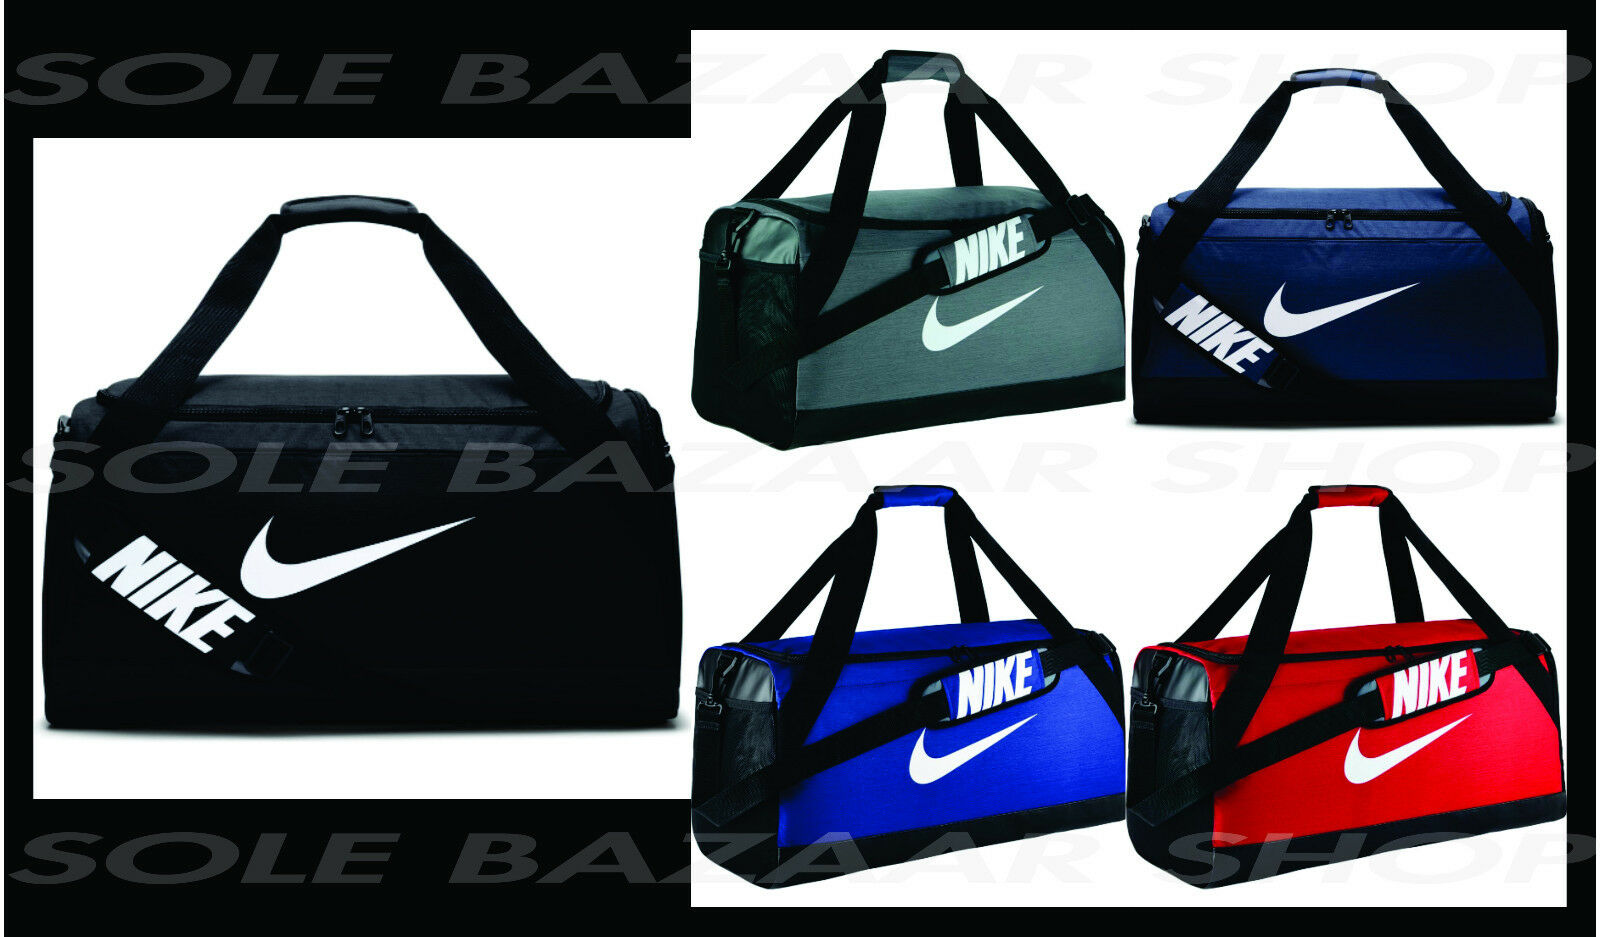 UNISEX NIKE BRASILIA (MEDIUM) TRAINING DUFFEL BAG ASST. COLORS фото 40a9aab7291a0